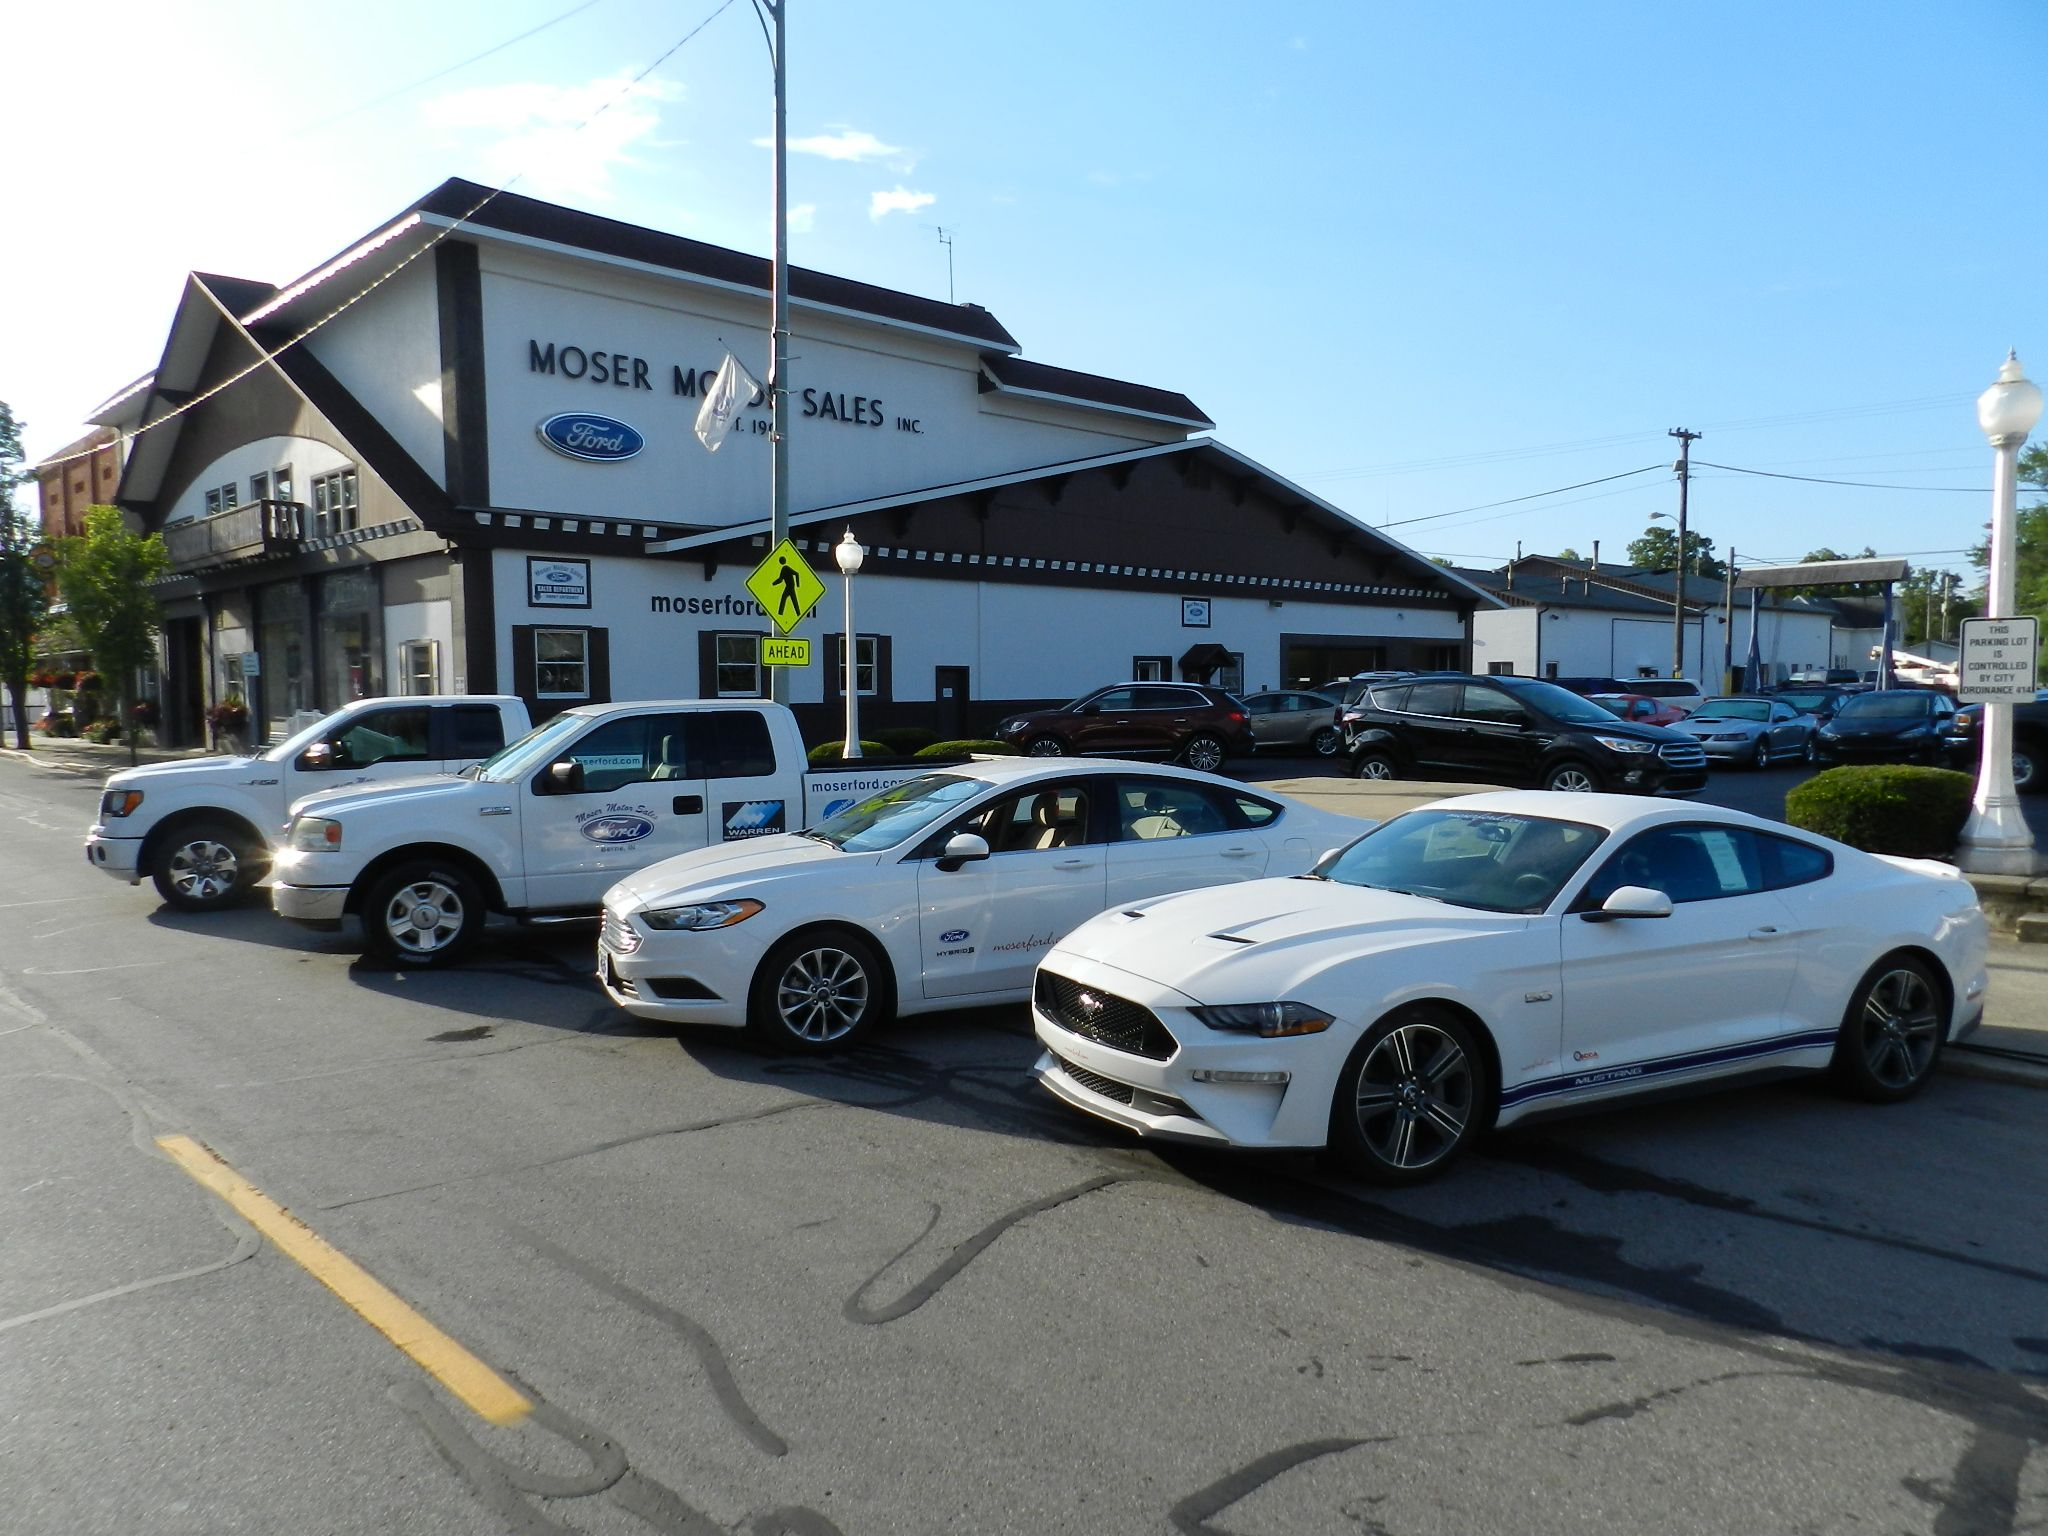 Moser Motor Sales Moser Ford Or Moser Motors In Berne Indiana